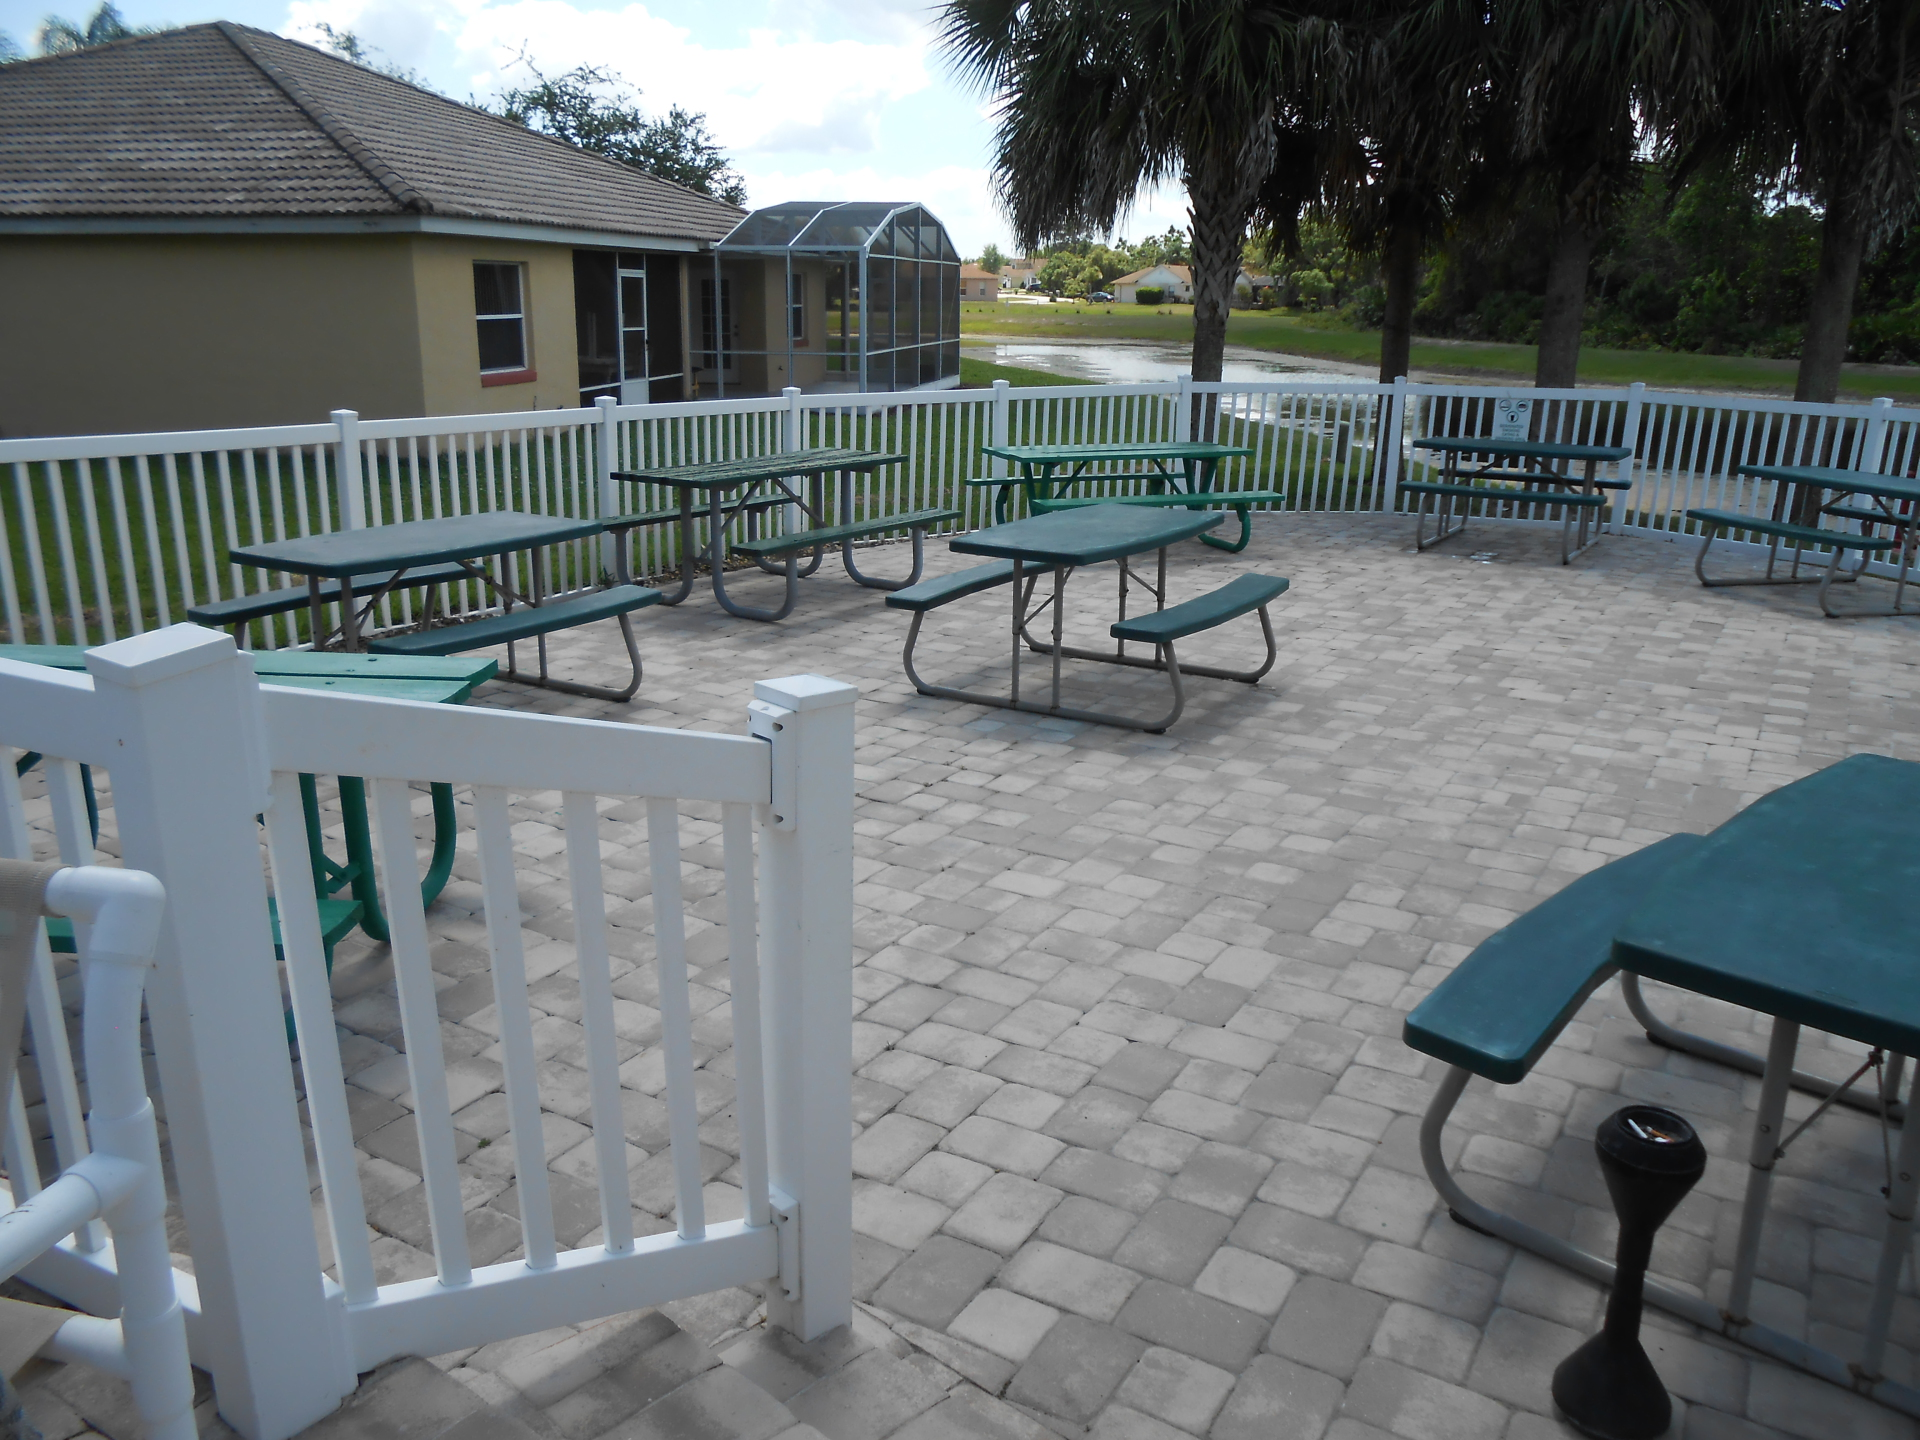 Picnic Area at main Club House